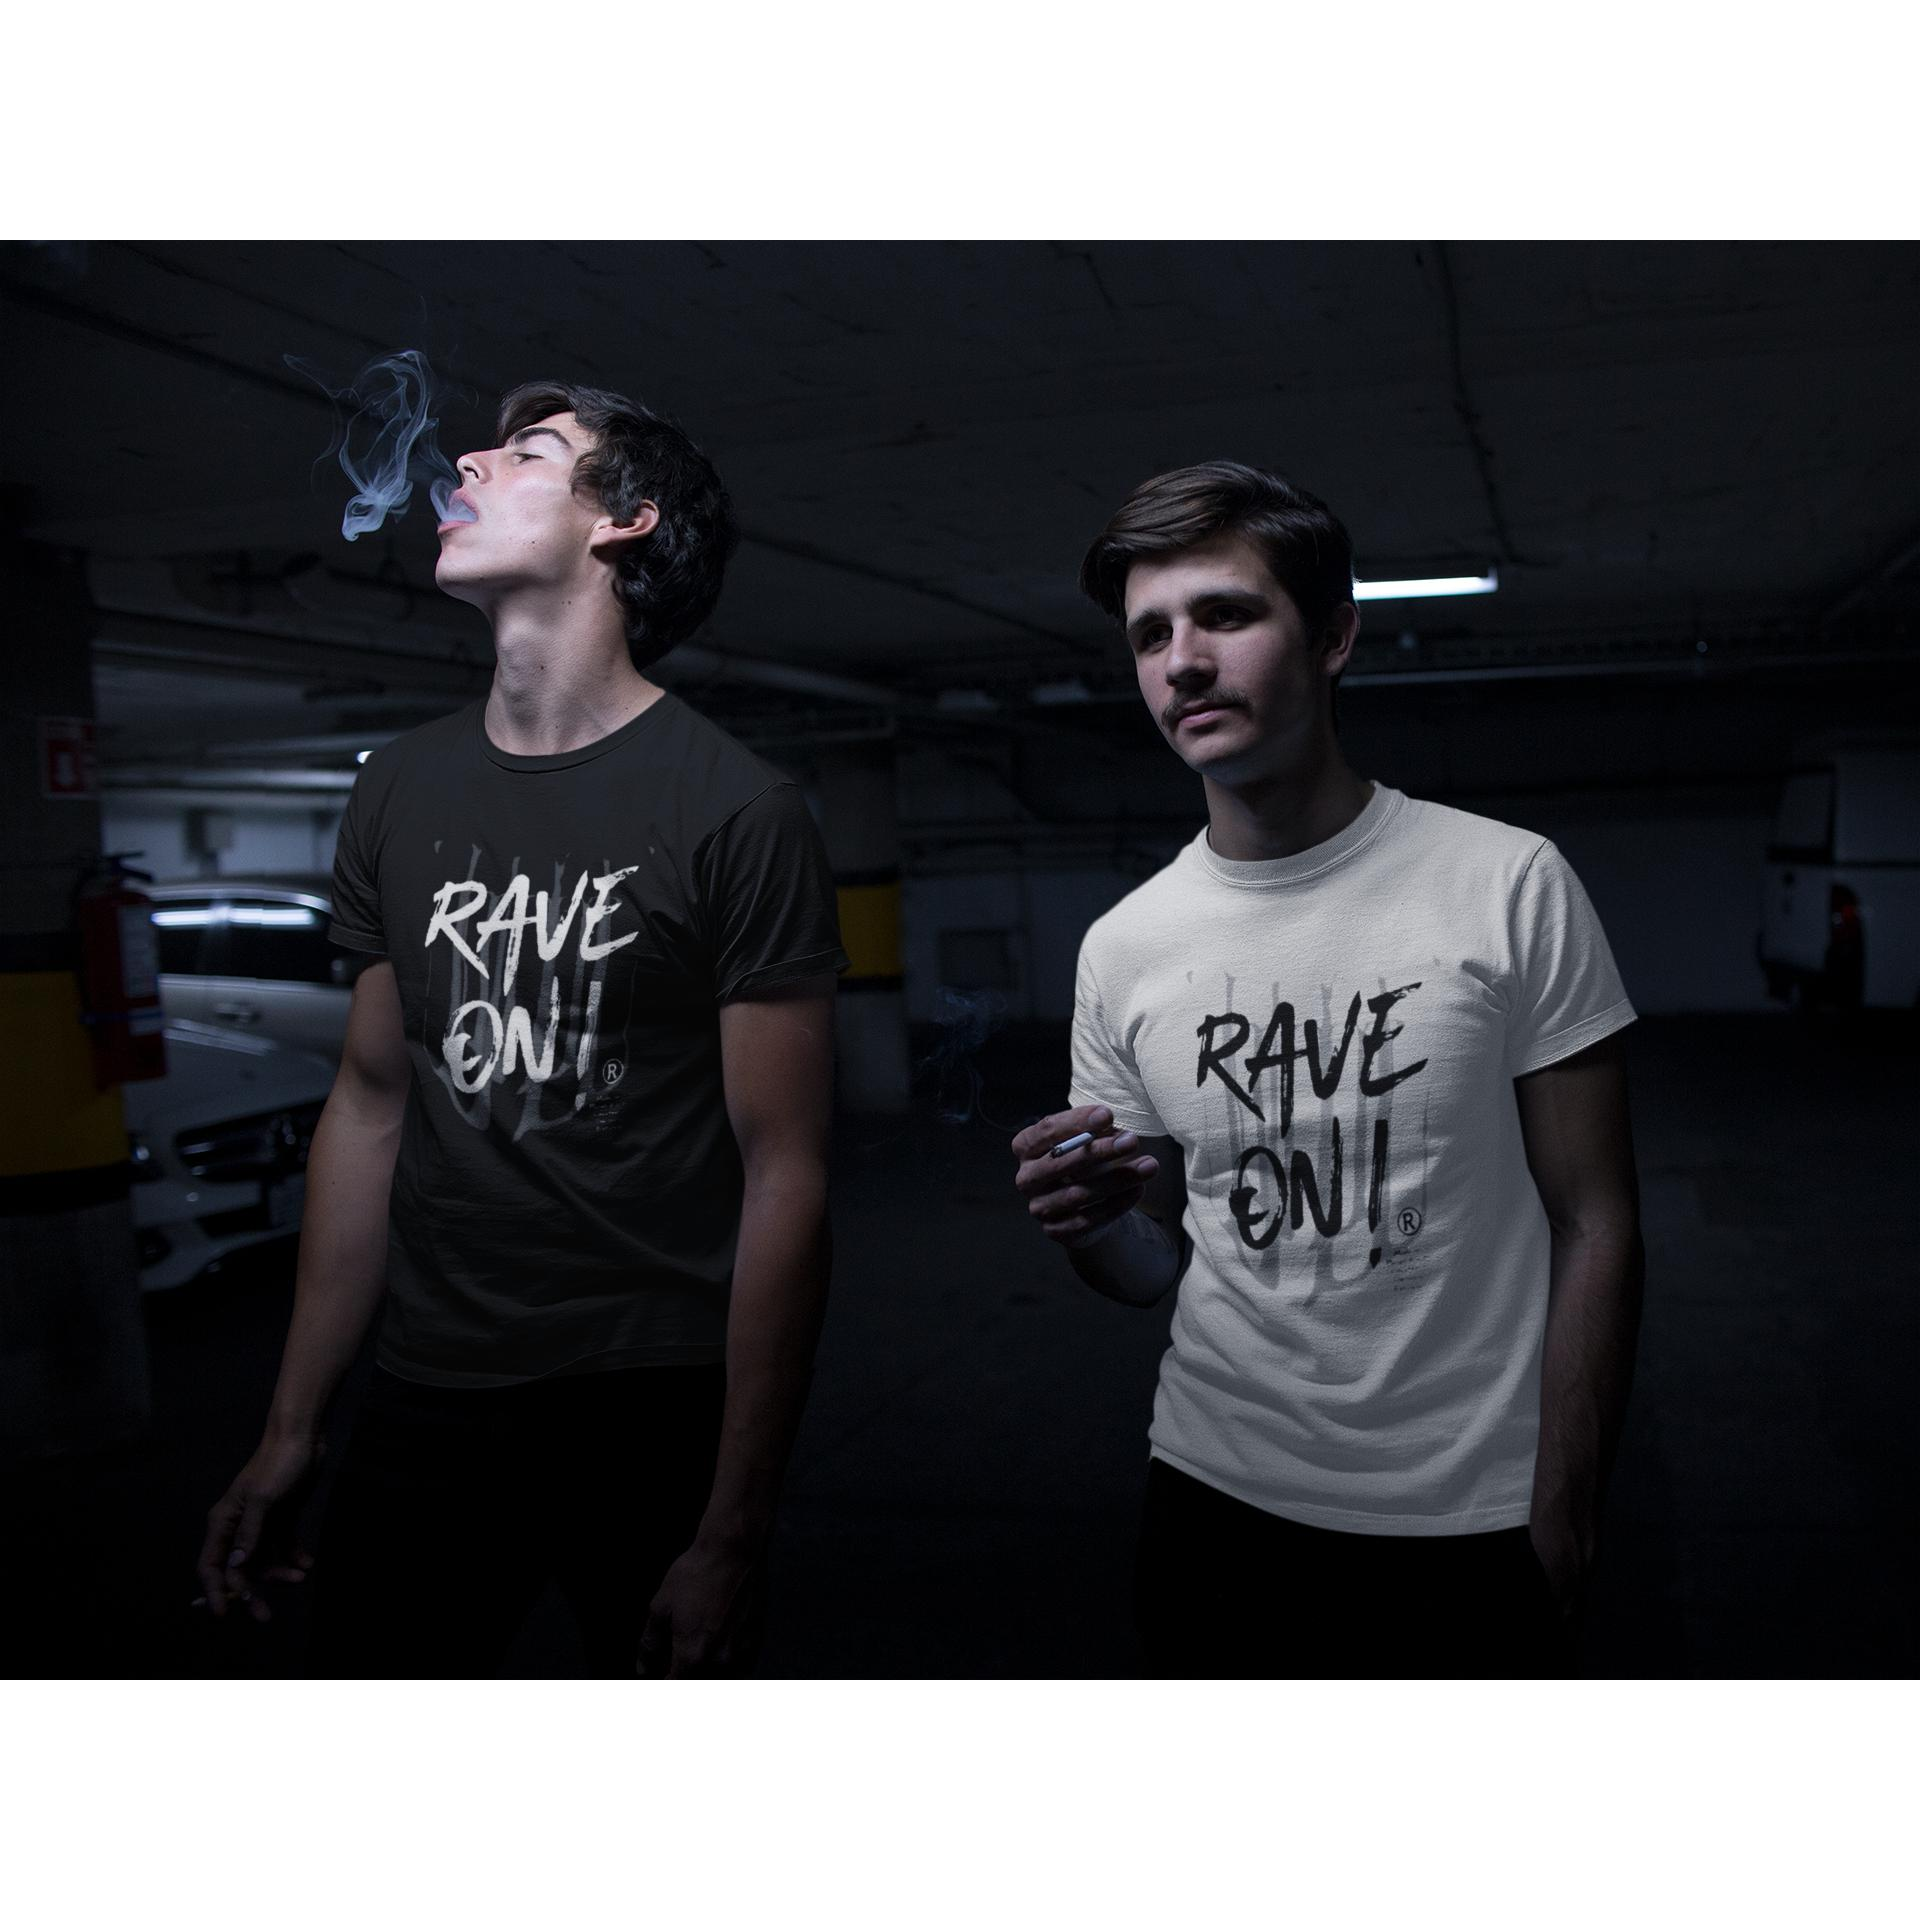 Rave On!® - Made On Planet Earth B2k20 - Herren Long Tee Men Long Tee - Rave On!® der Club & Techno Szene Shop für Coole Junge Mode Streetwear Style & Fashion Outfits + Sexy Festival 420 Stuff